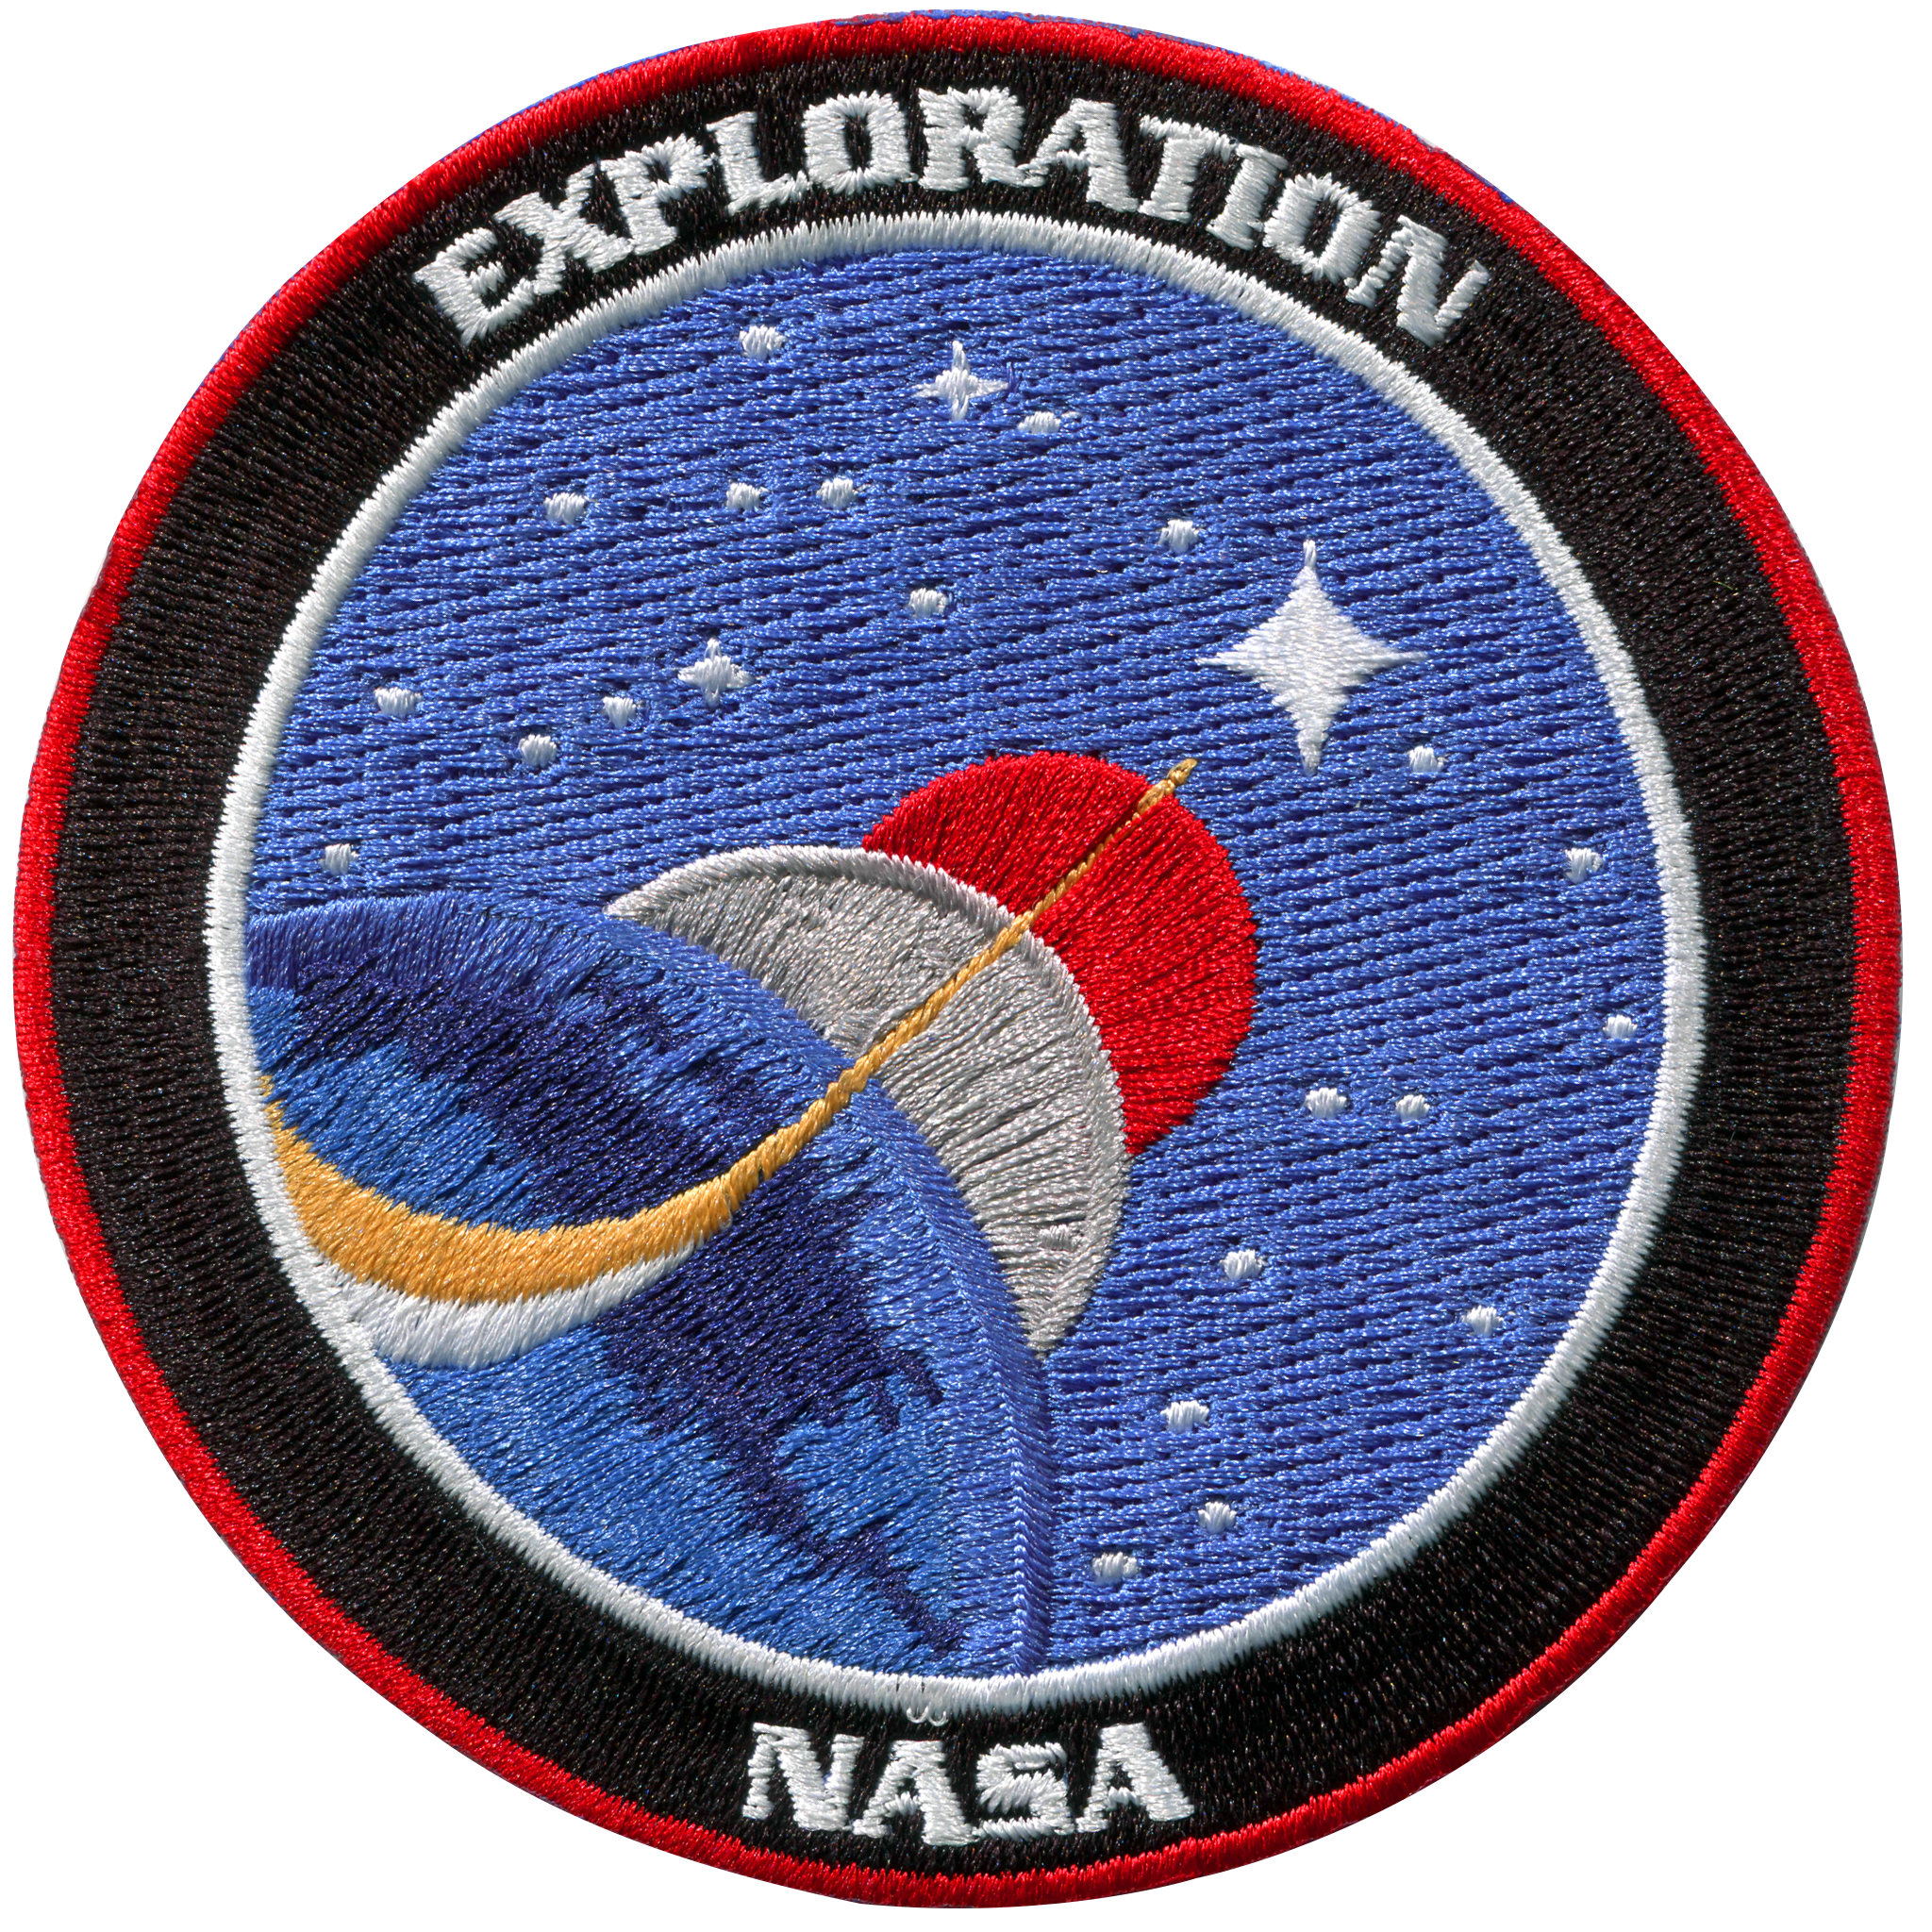 nasa exploration the o jays products and presidents the vision for space exploration vse was a plan for space exploration announced on